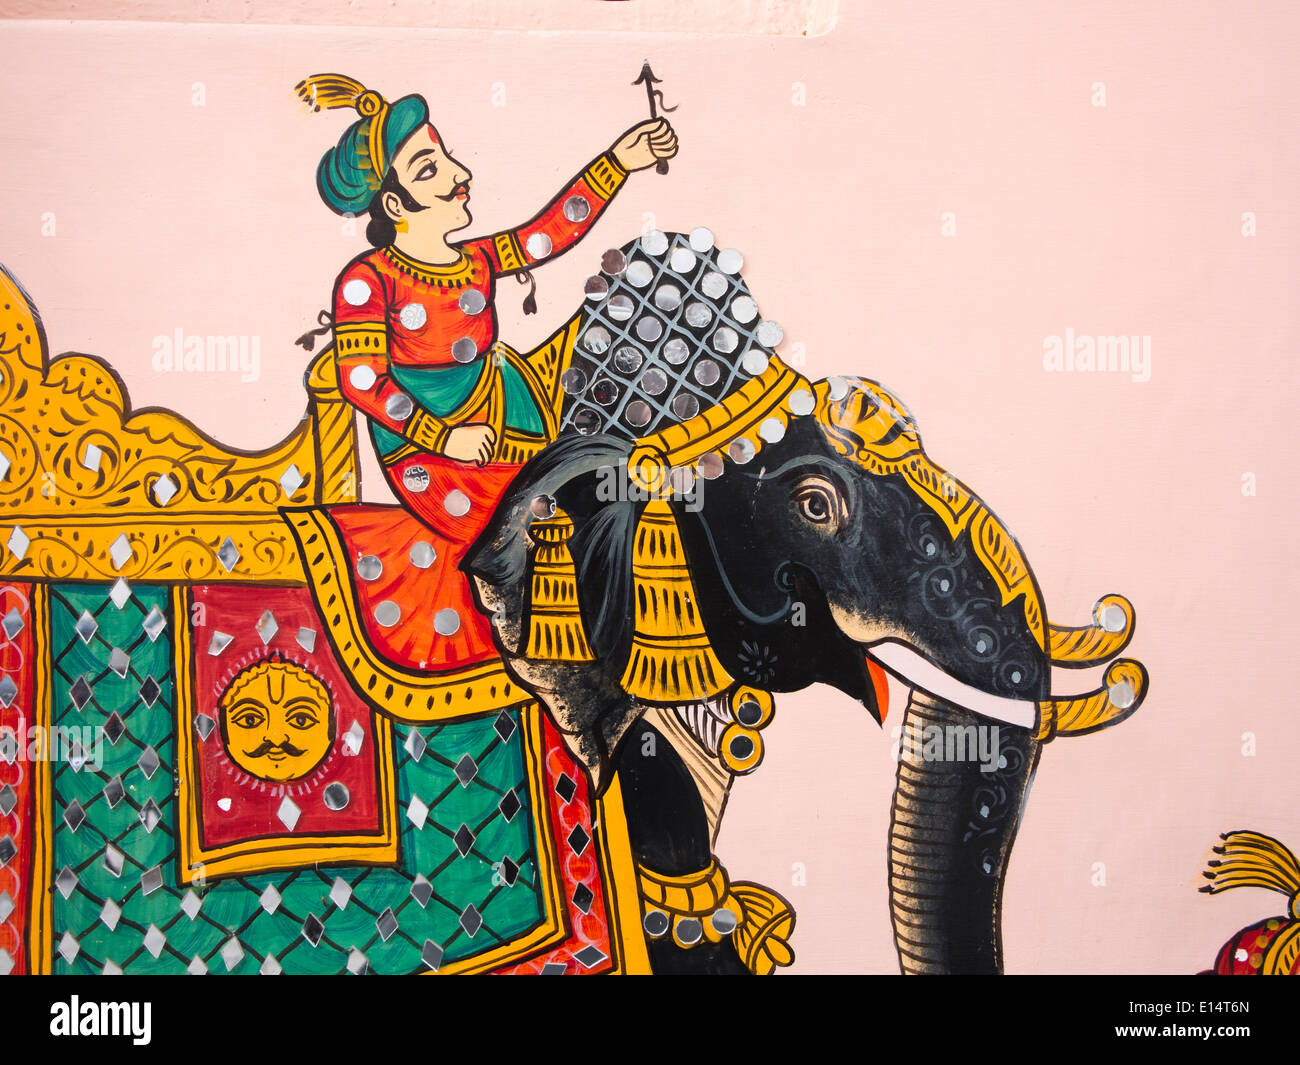 Rajasthani Folk Wall Paintings